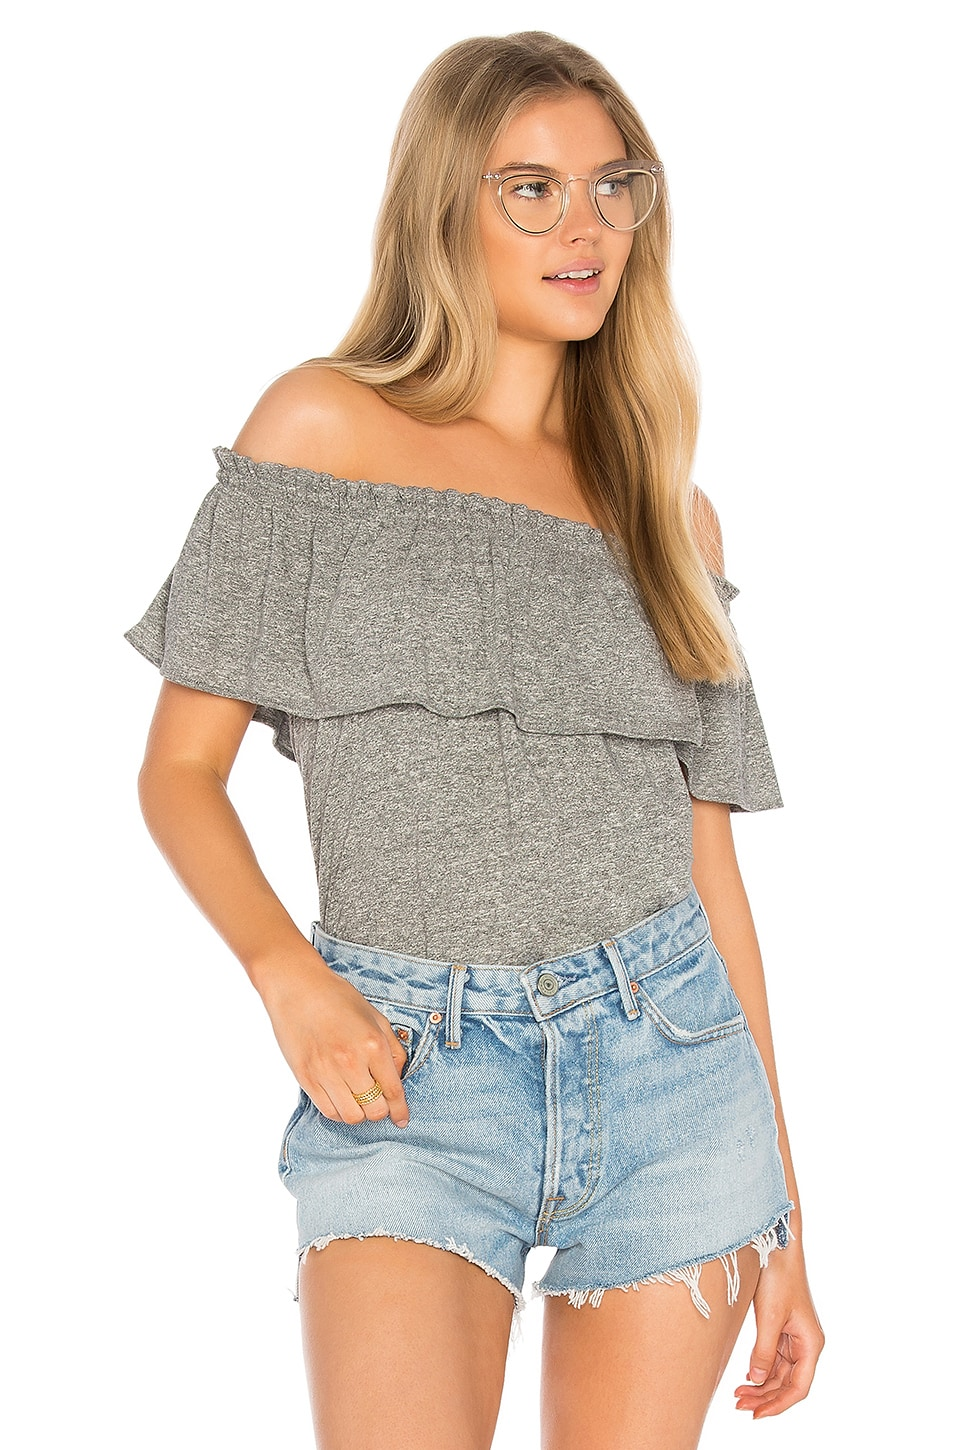 The Ruffle Top